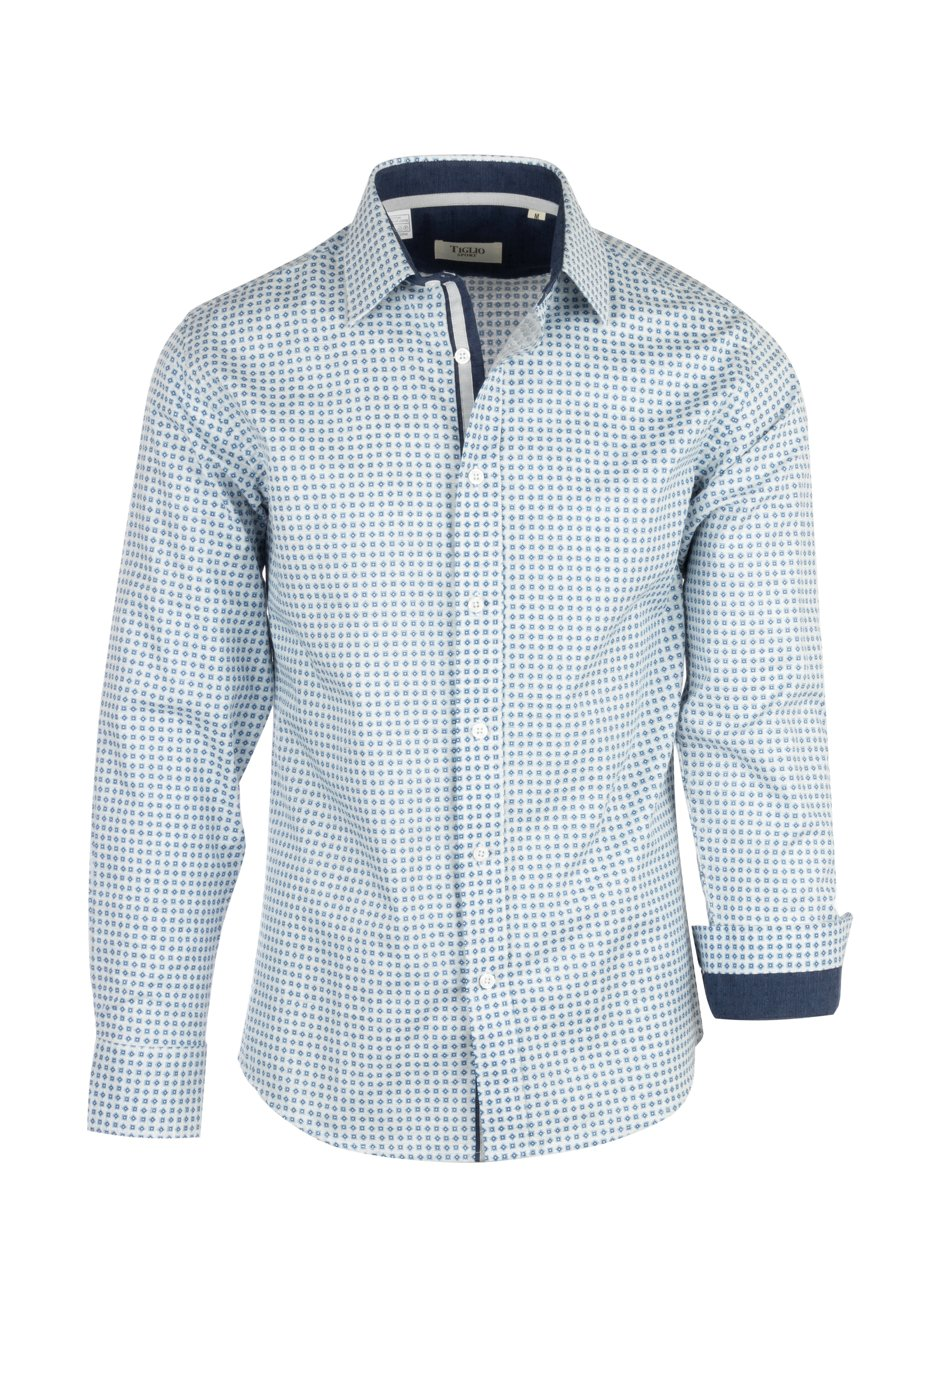 Tiglio Sport Light and Pale Blue Mini-Check Modern Fit Sport Shirt V-90799